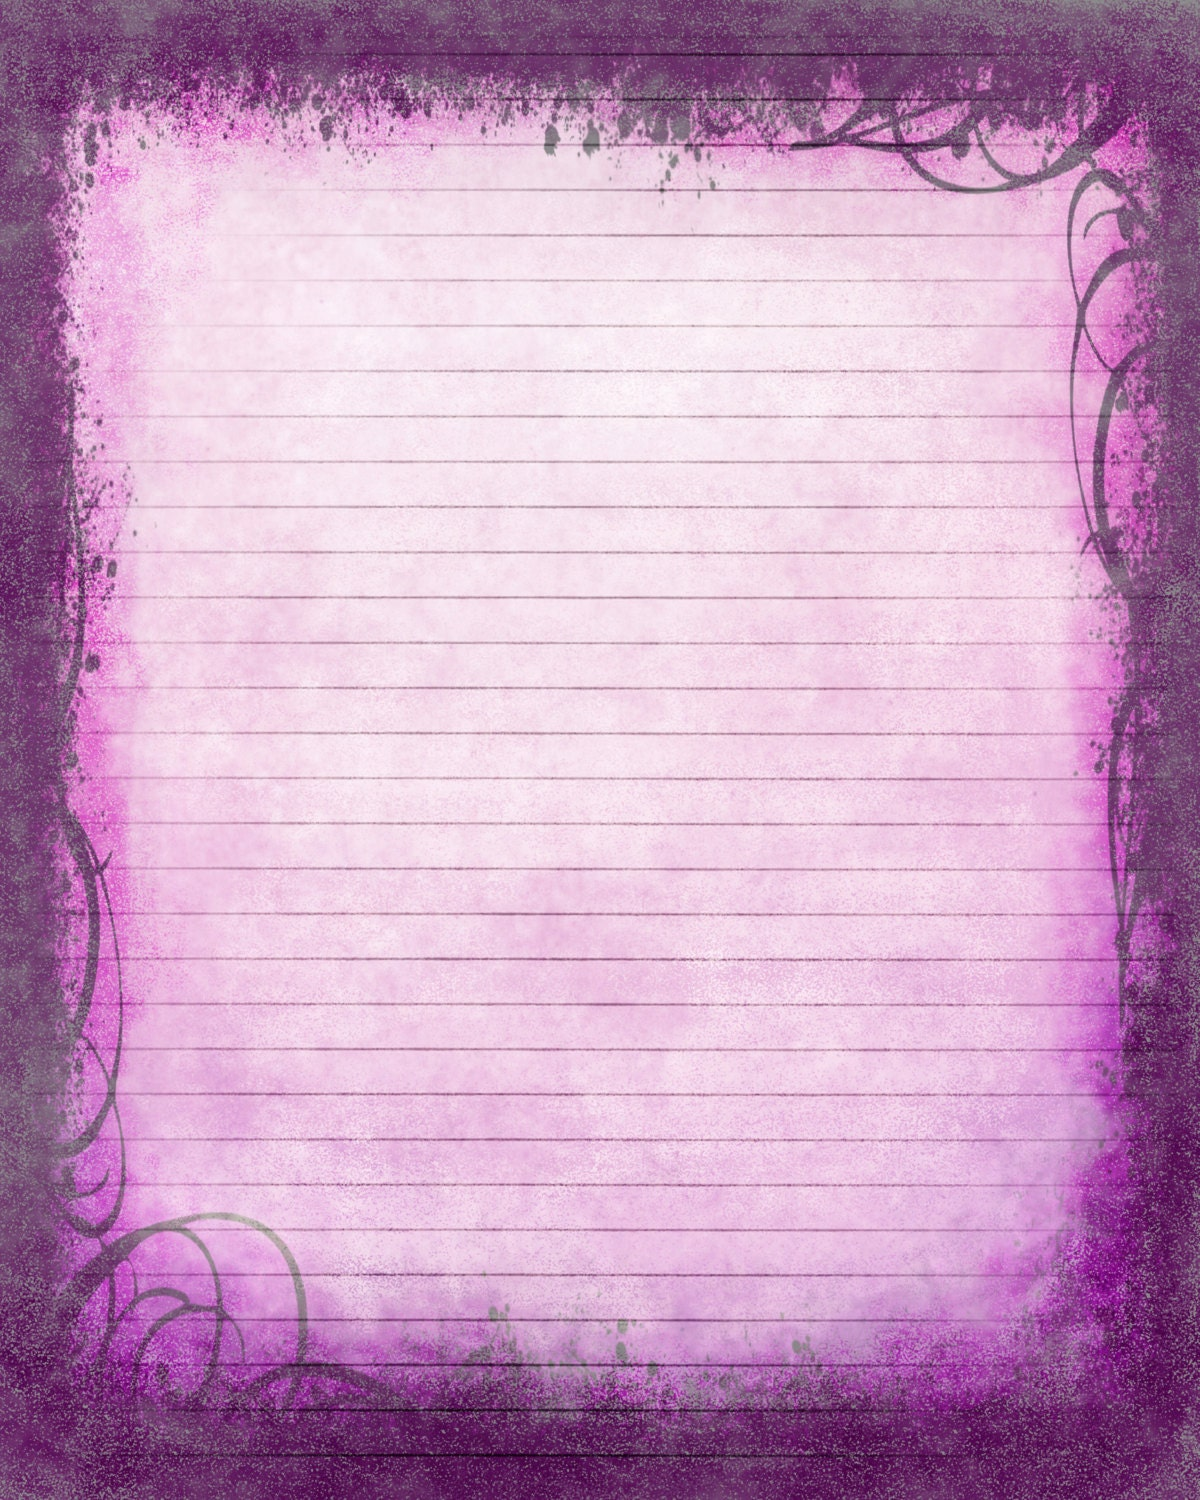 Lined Stationery Paper Simple Printable Journal Page Instant Download Purple Digital